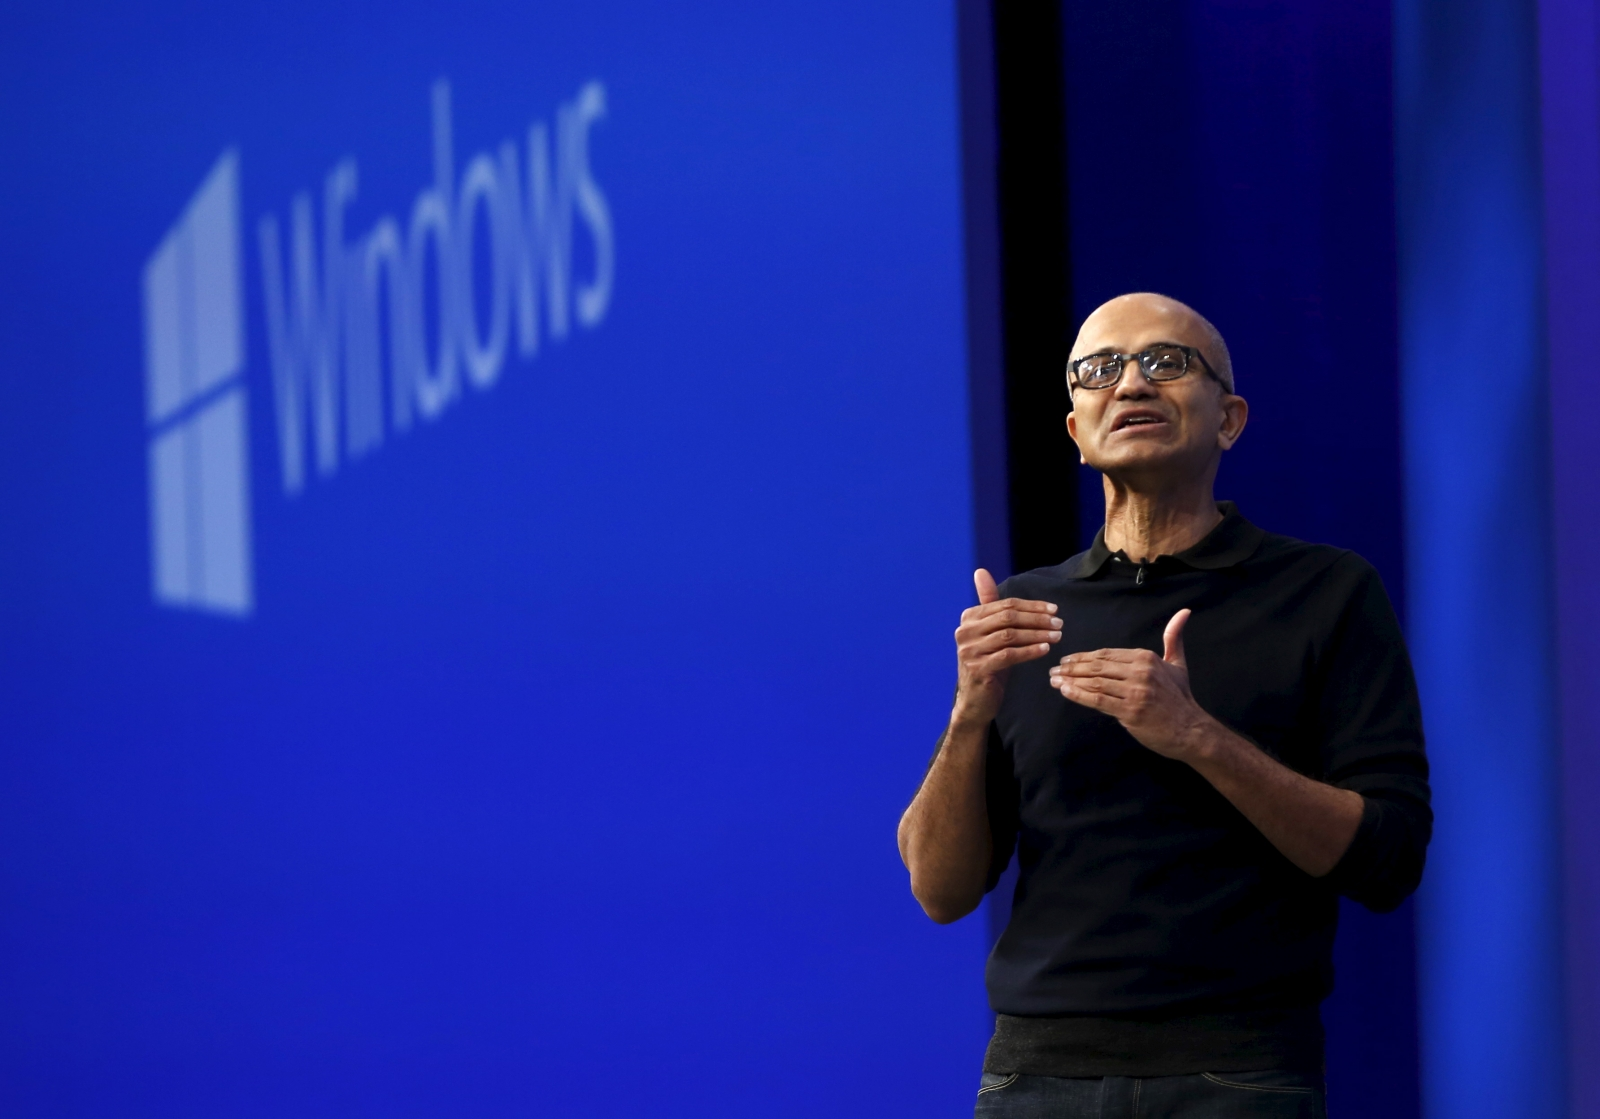 Microsoft CEO Satya Nadella Build 2015